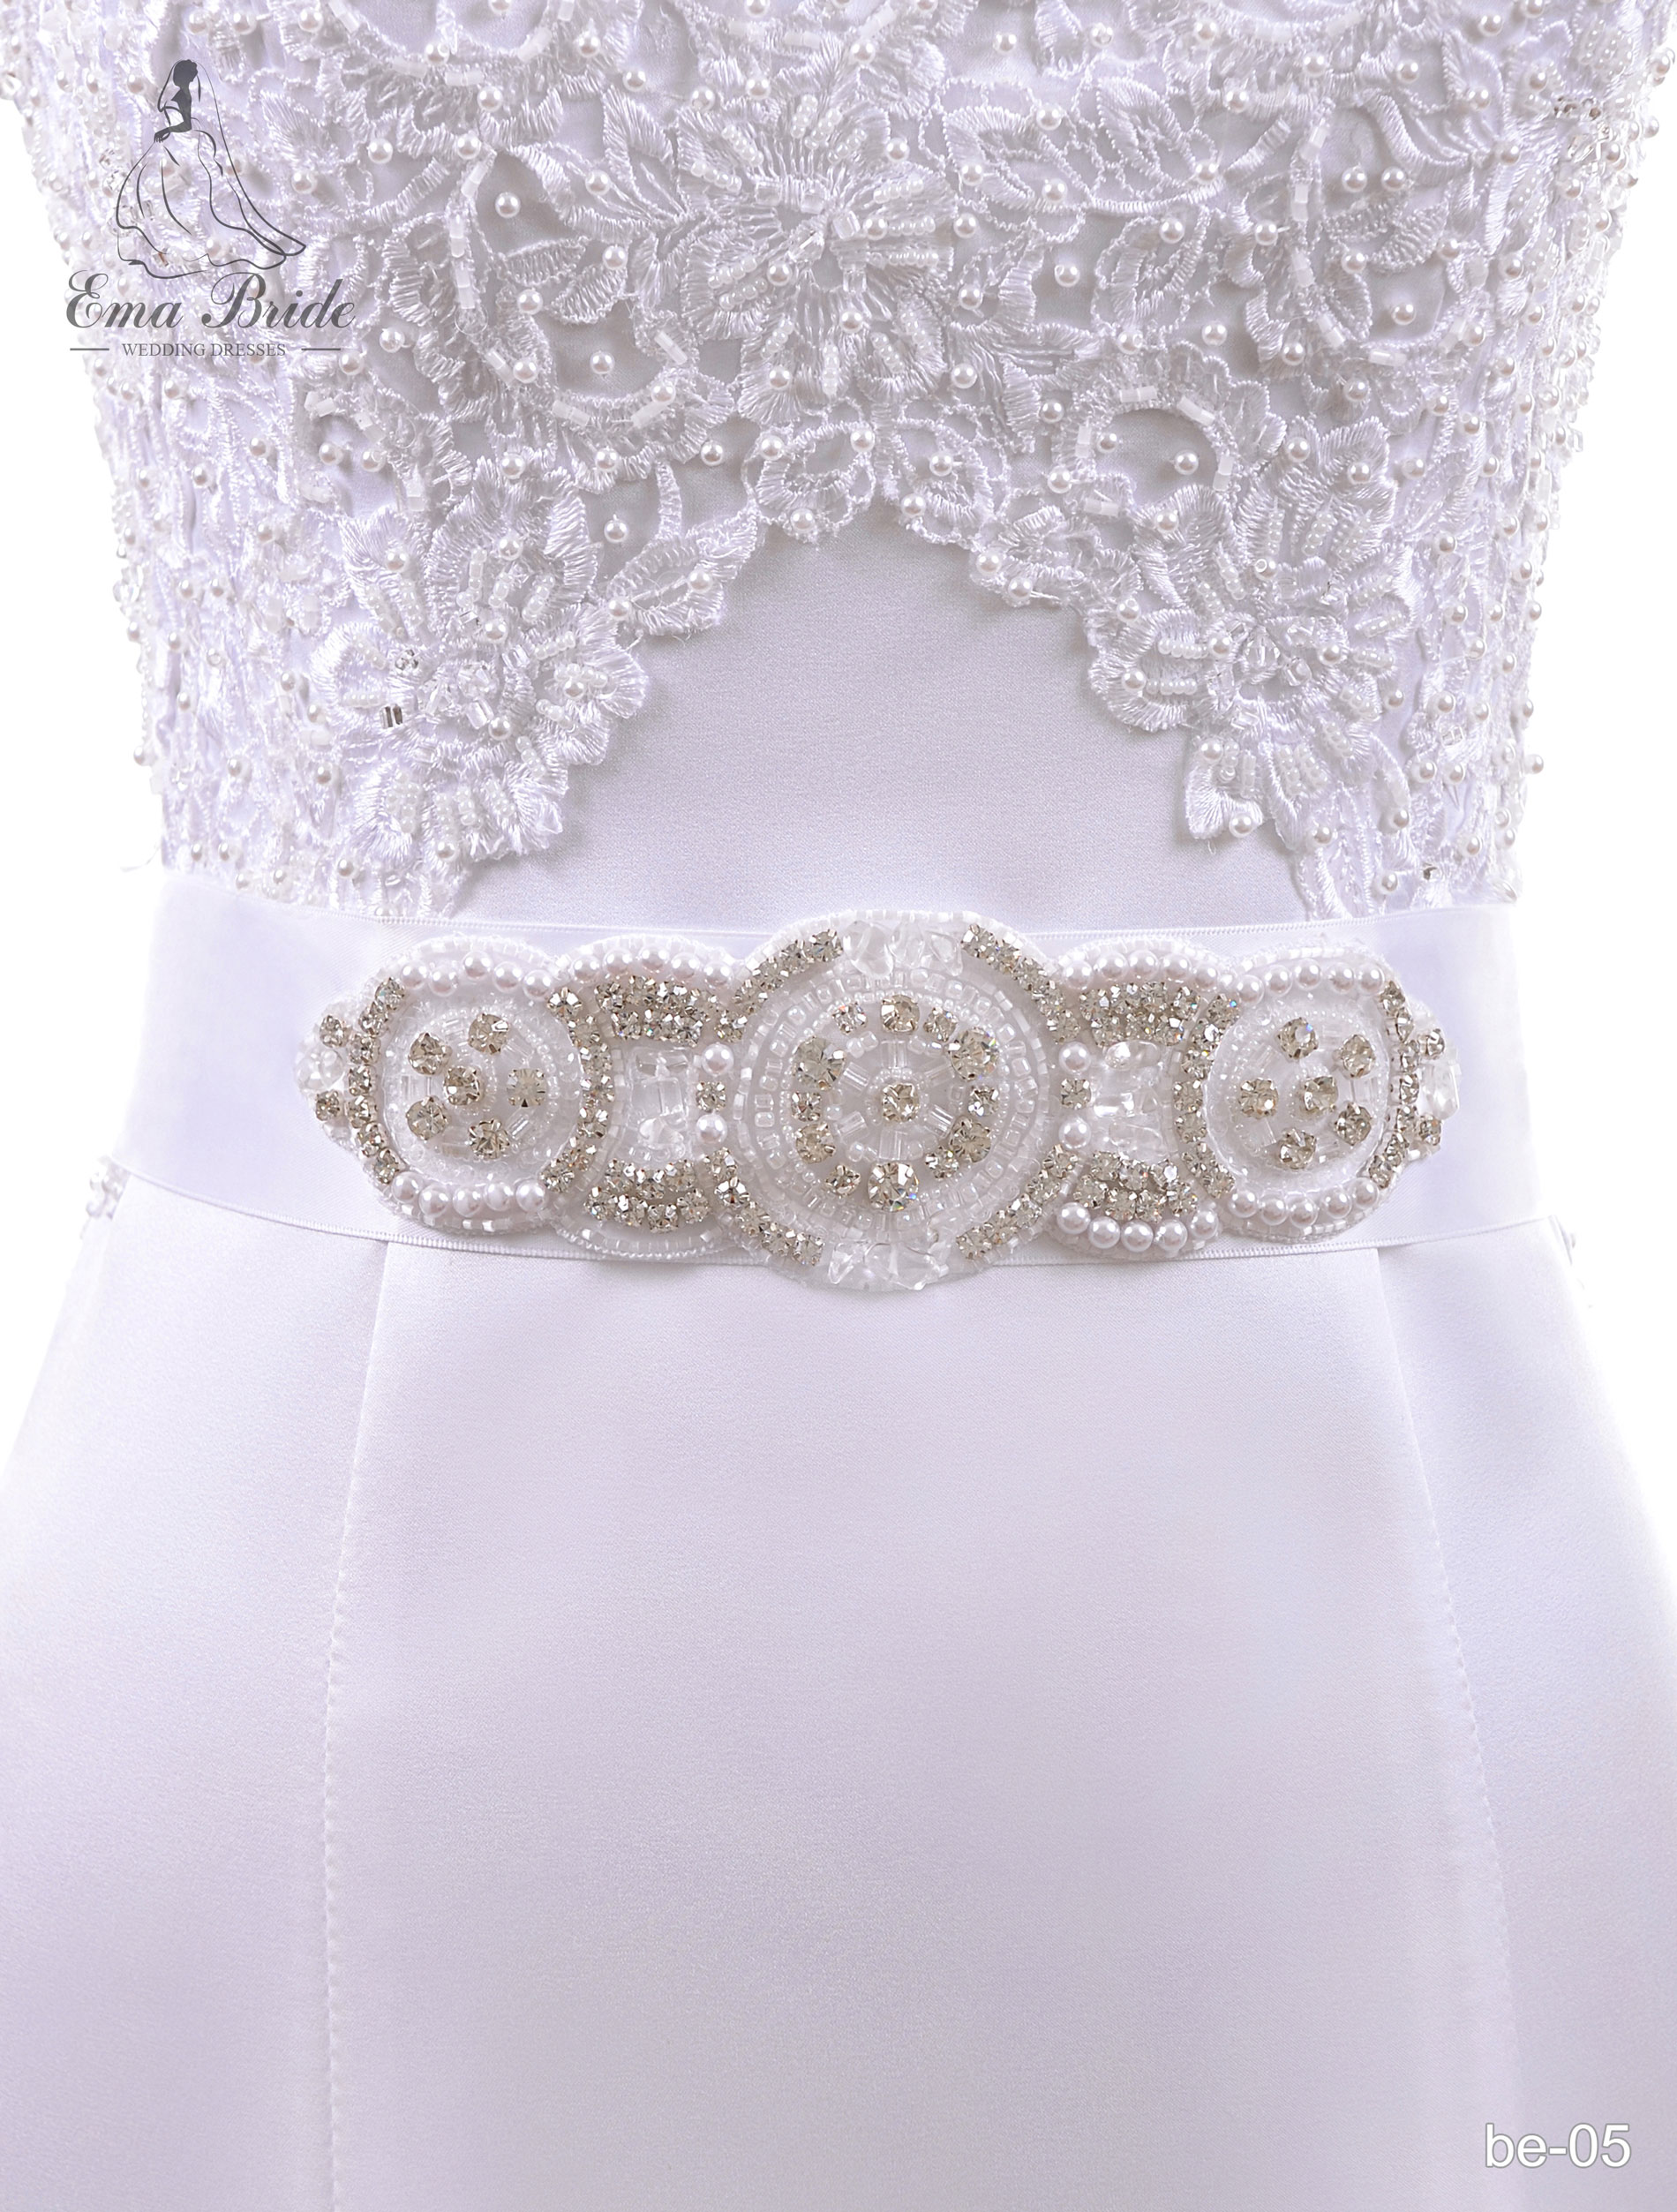 A belt for a wedding dress Be-05